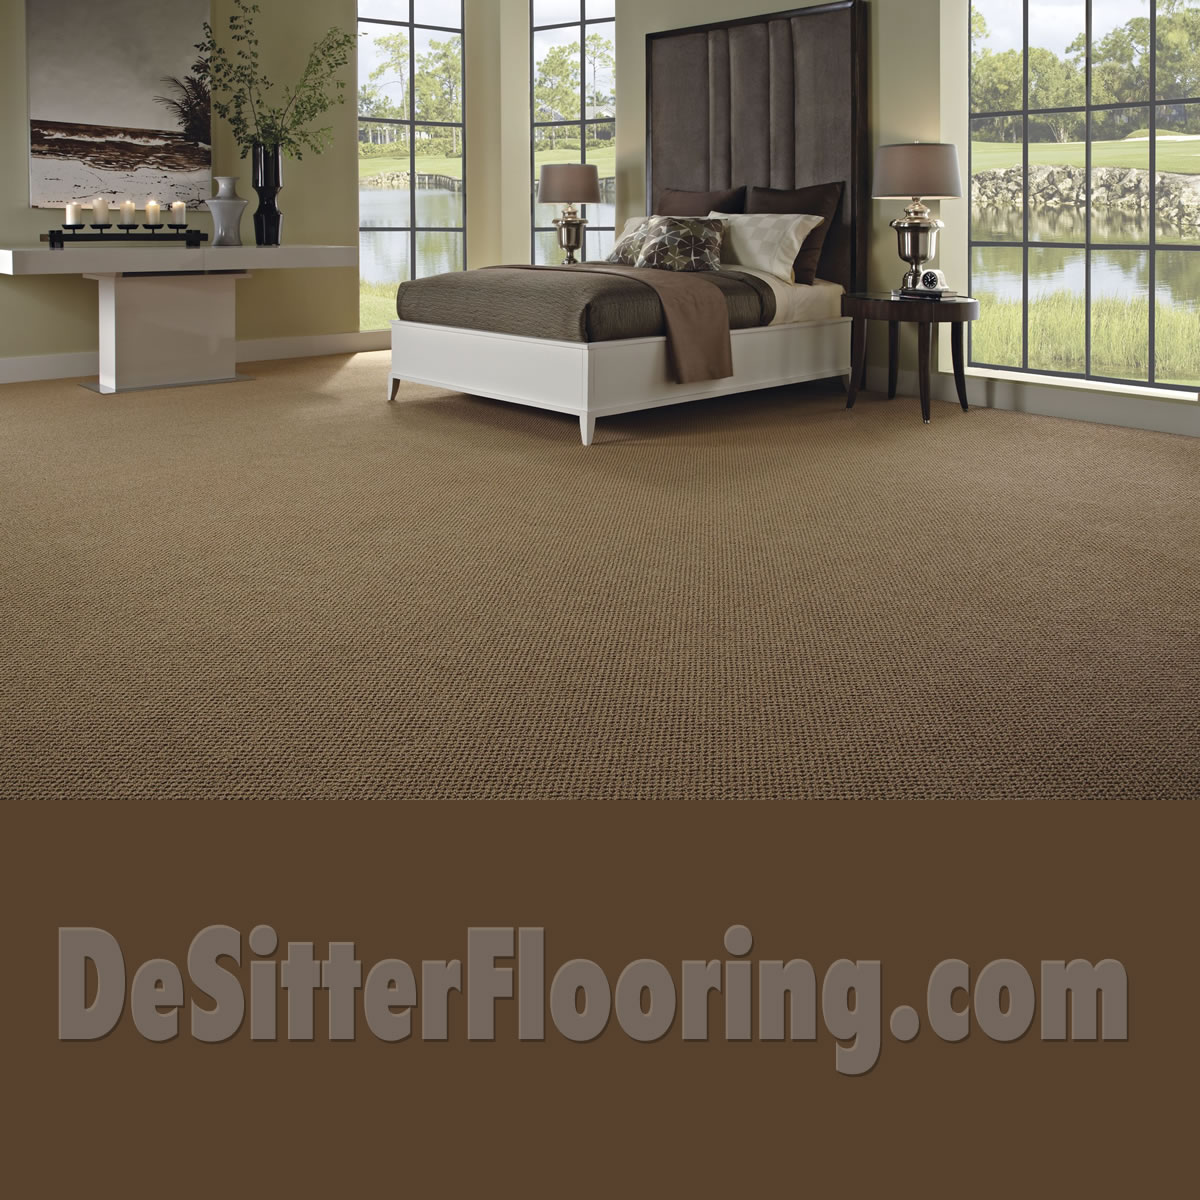 New carpet installation western springs 60888 desitter flooring here at desitter flooring we have the quality carpet youve been looking for we have the right combination of style and design for any home tyukafo